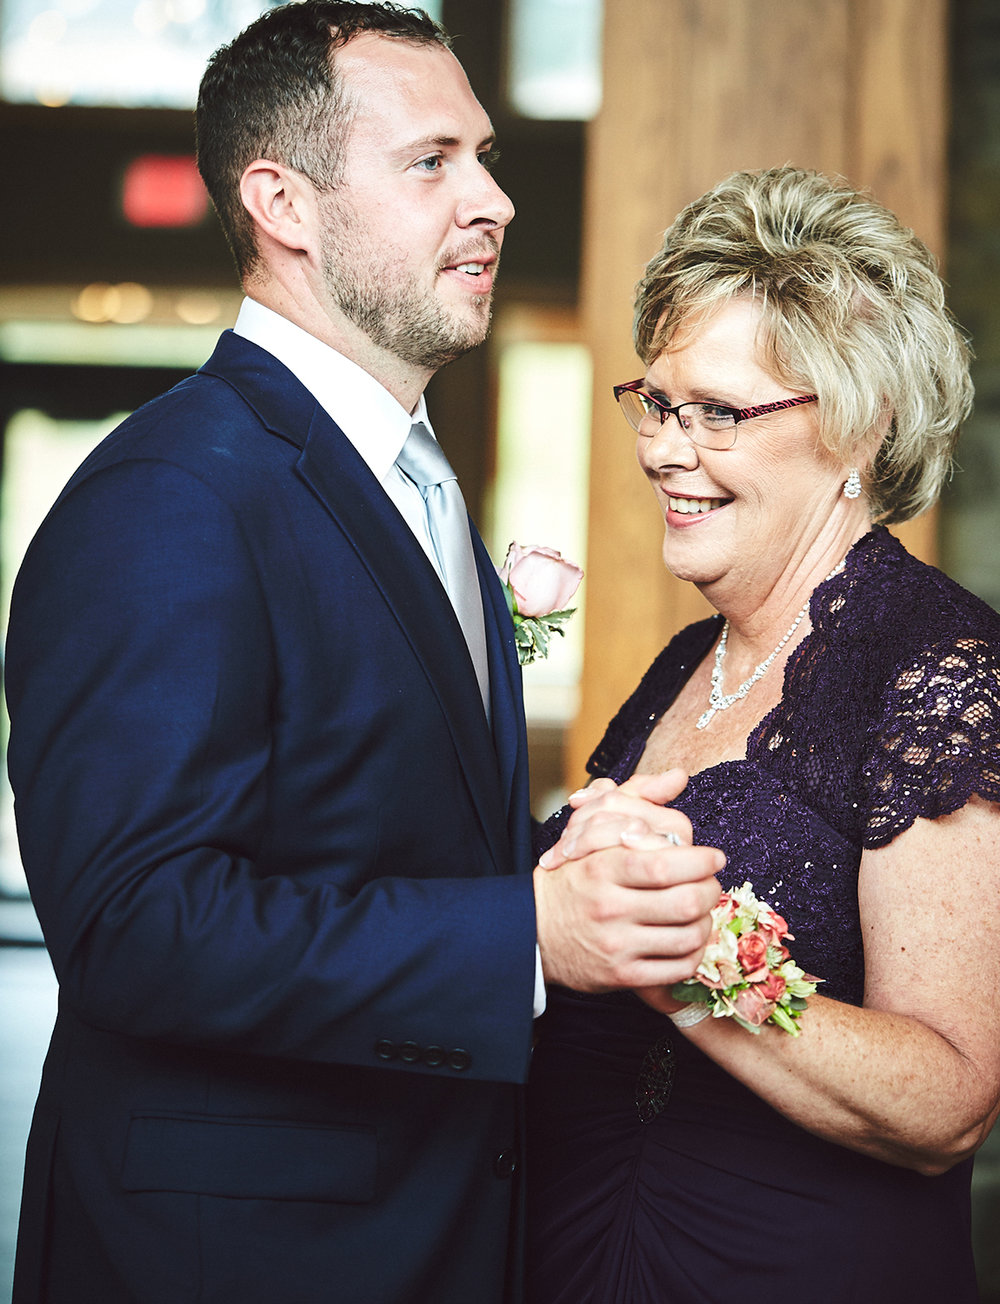 180714_HolidayValleyLodgeWeddingPhotography_By_BriJohnsonWeddings_0139.jpg